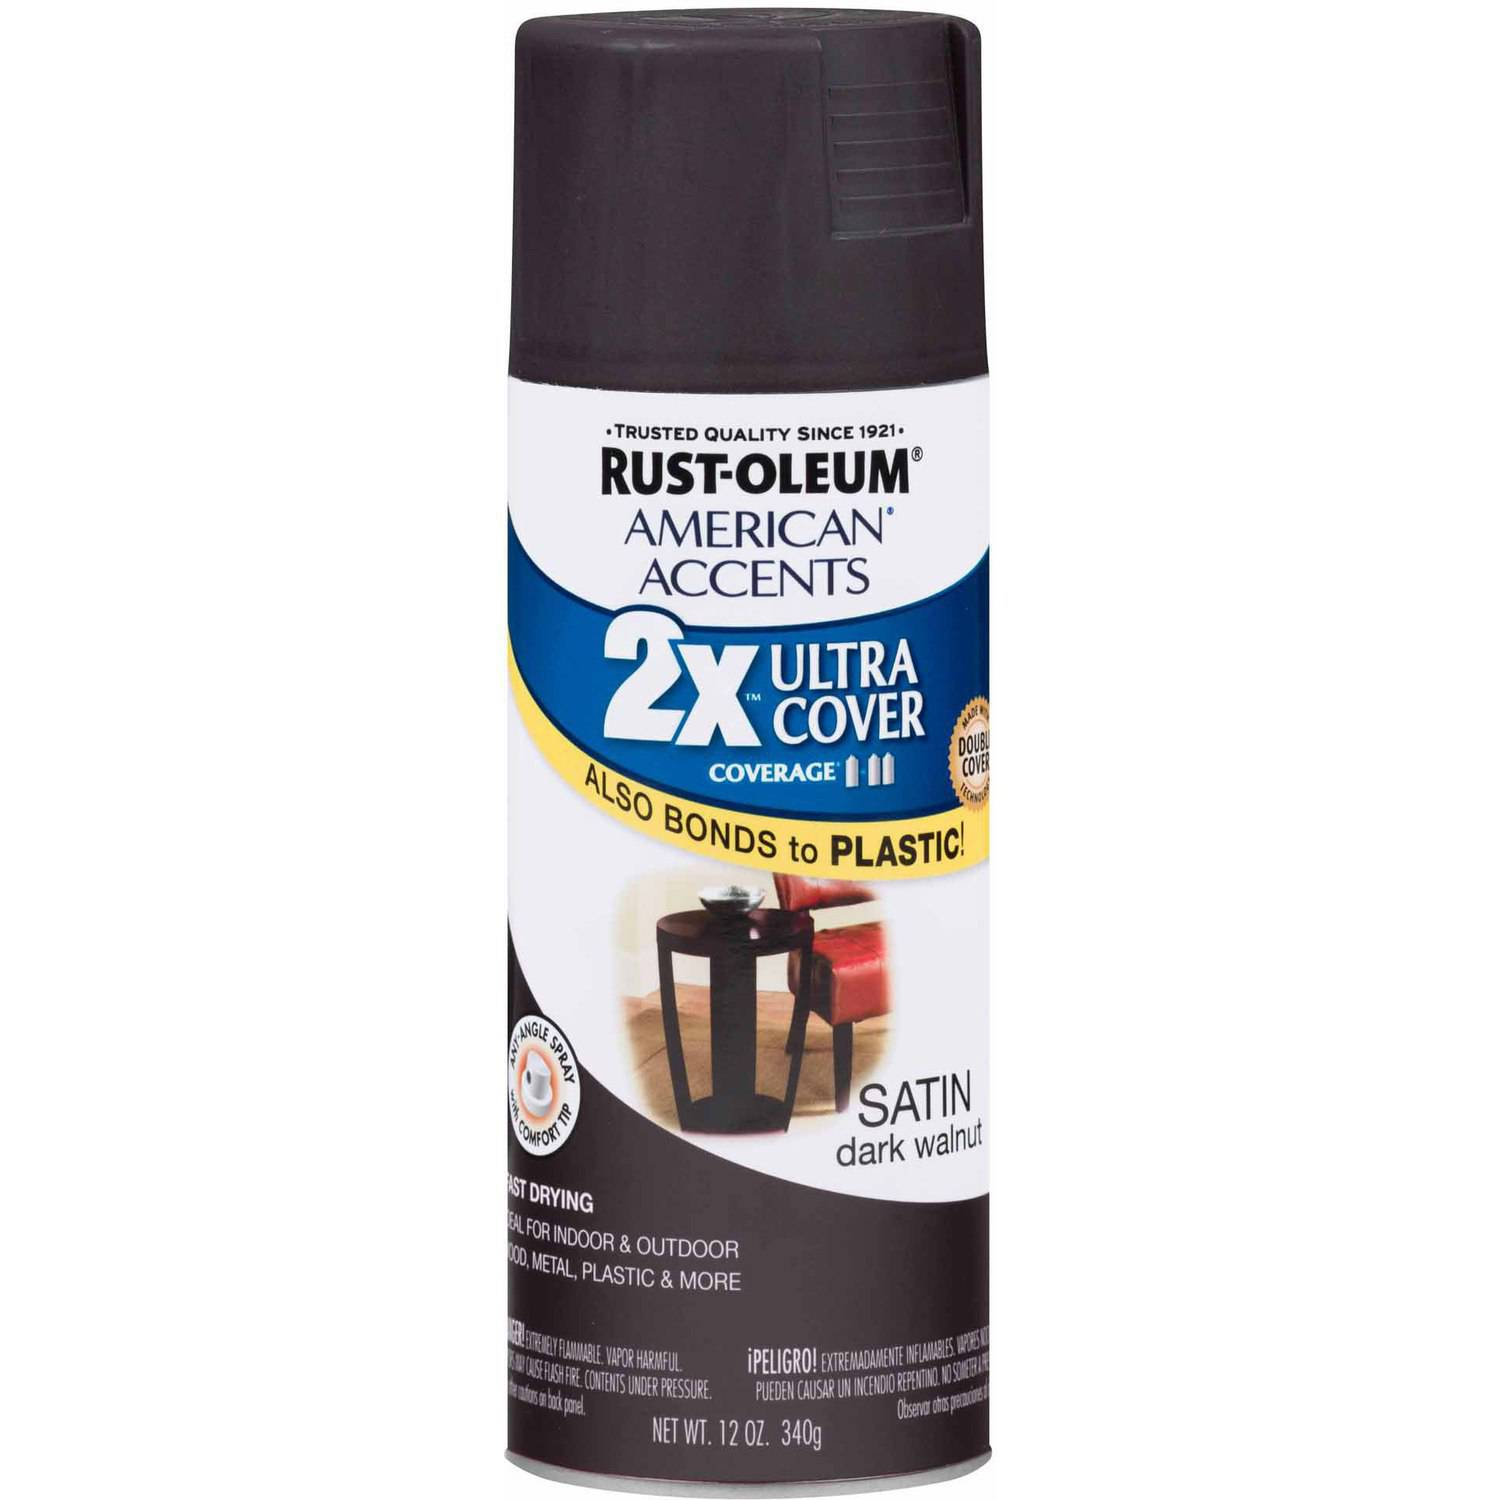 Rust-Oleum American Accents Ultra Cover 2x Paint, Satin Dark Walnut